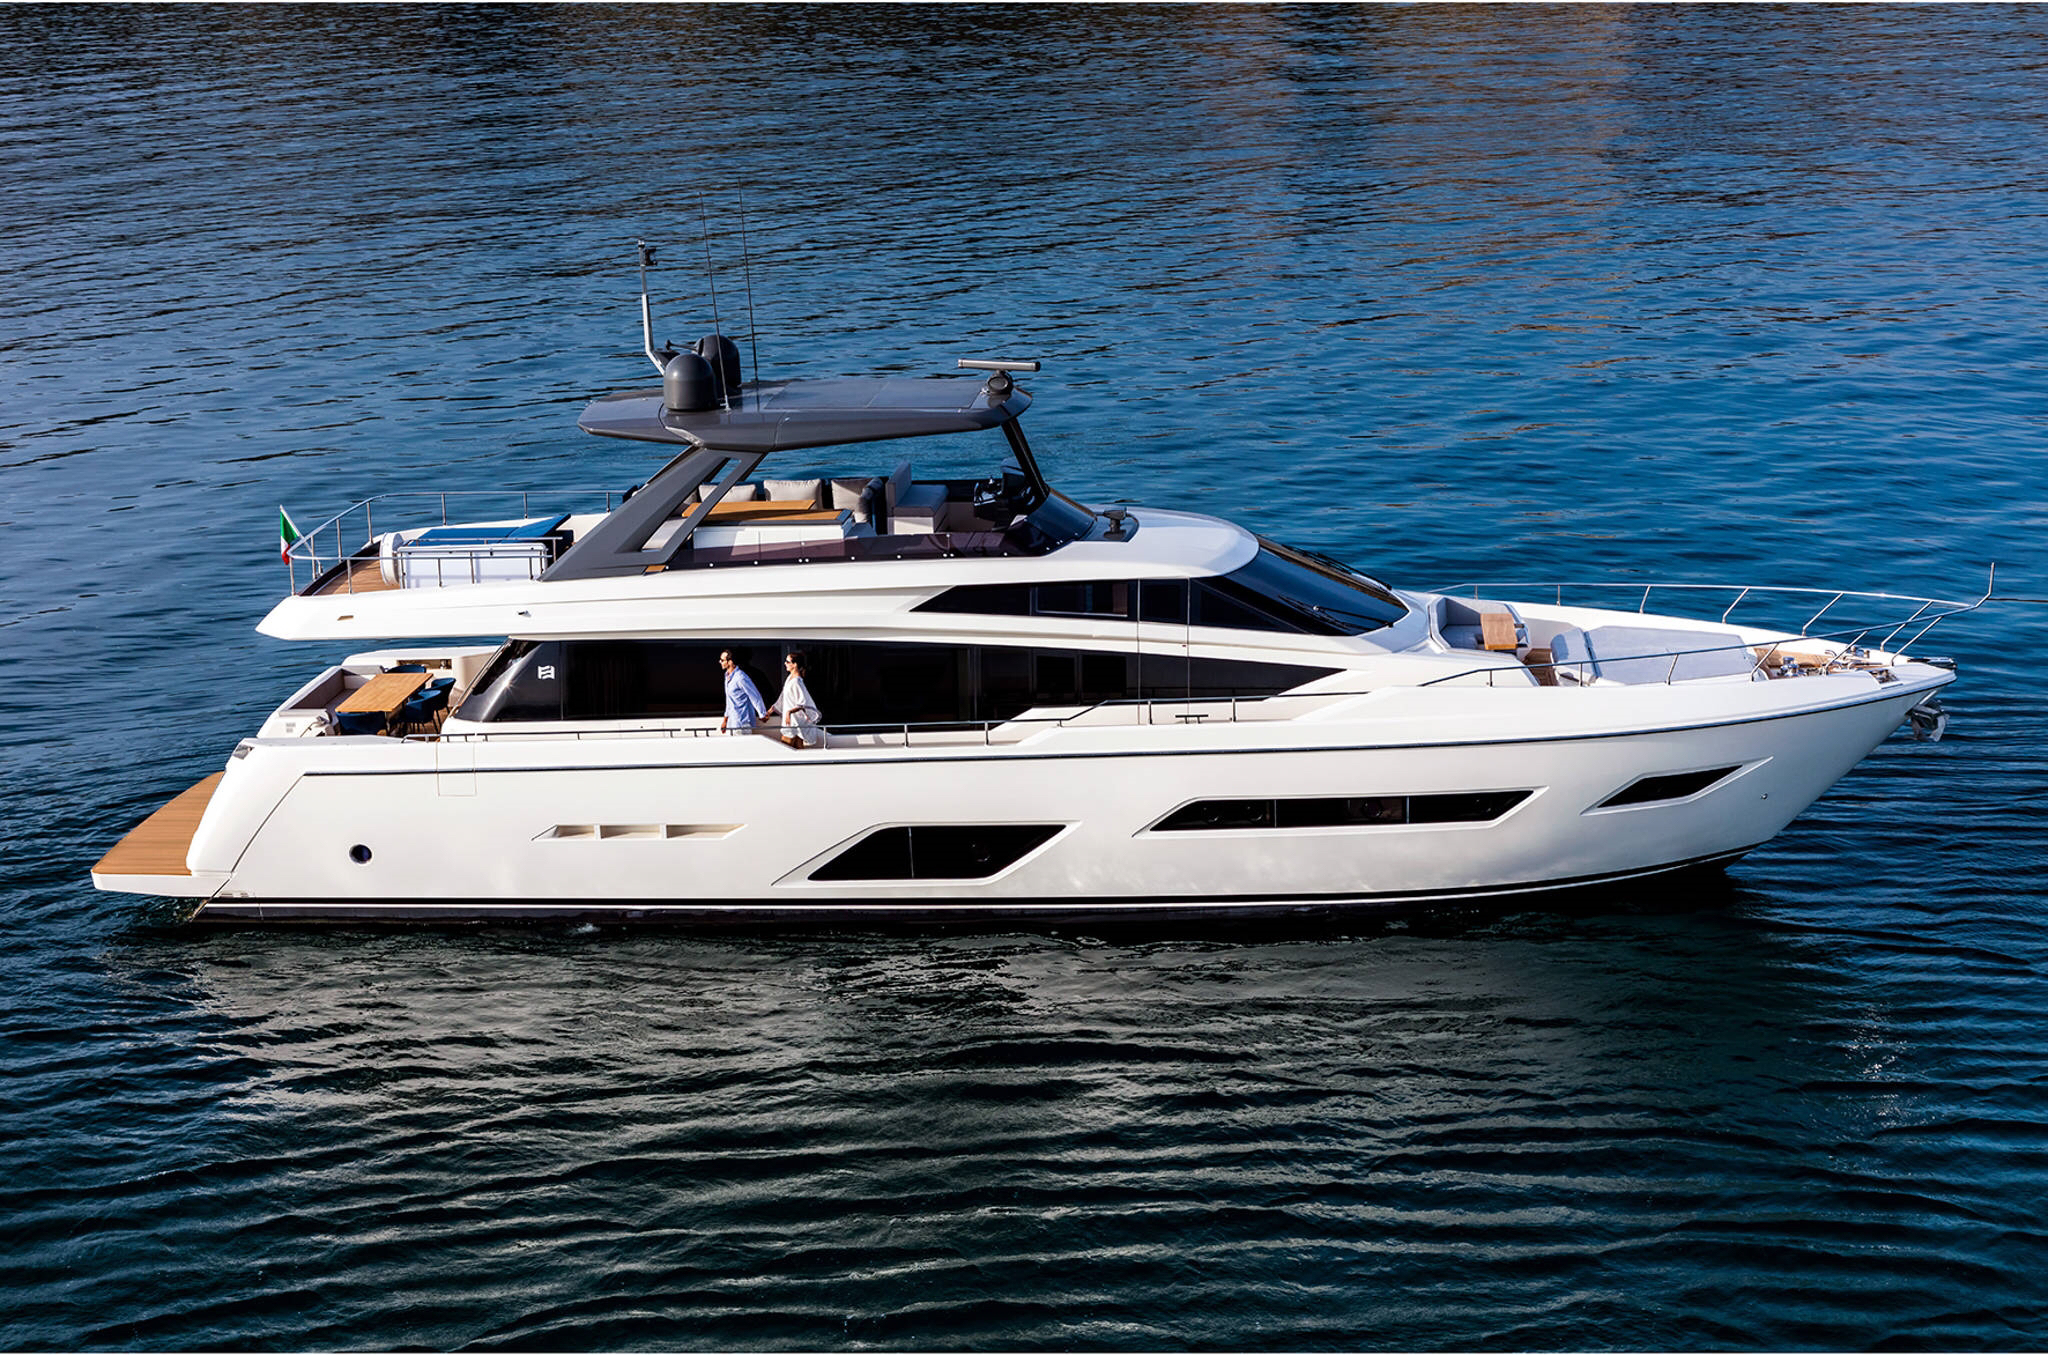 ferretti yachts 780 ferretti group JMA Yachting Port Fréjus Var vente location neuf occasion places de port